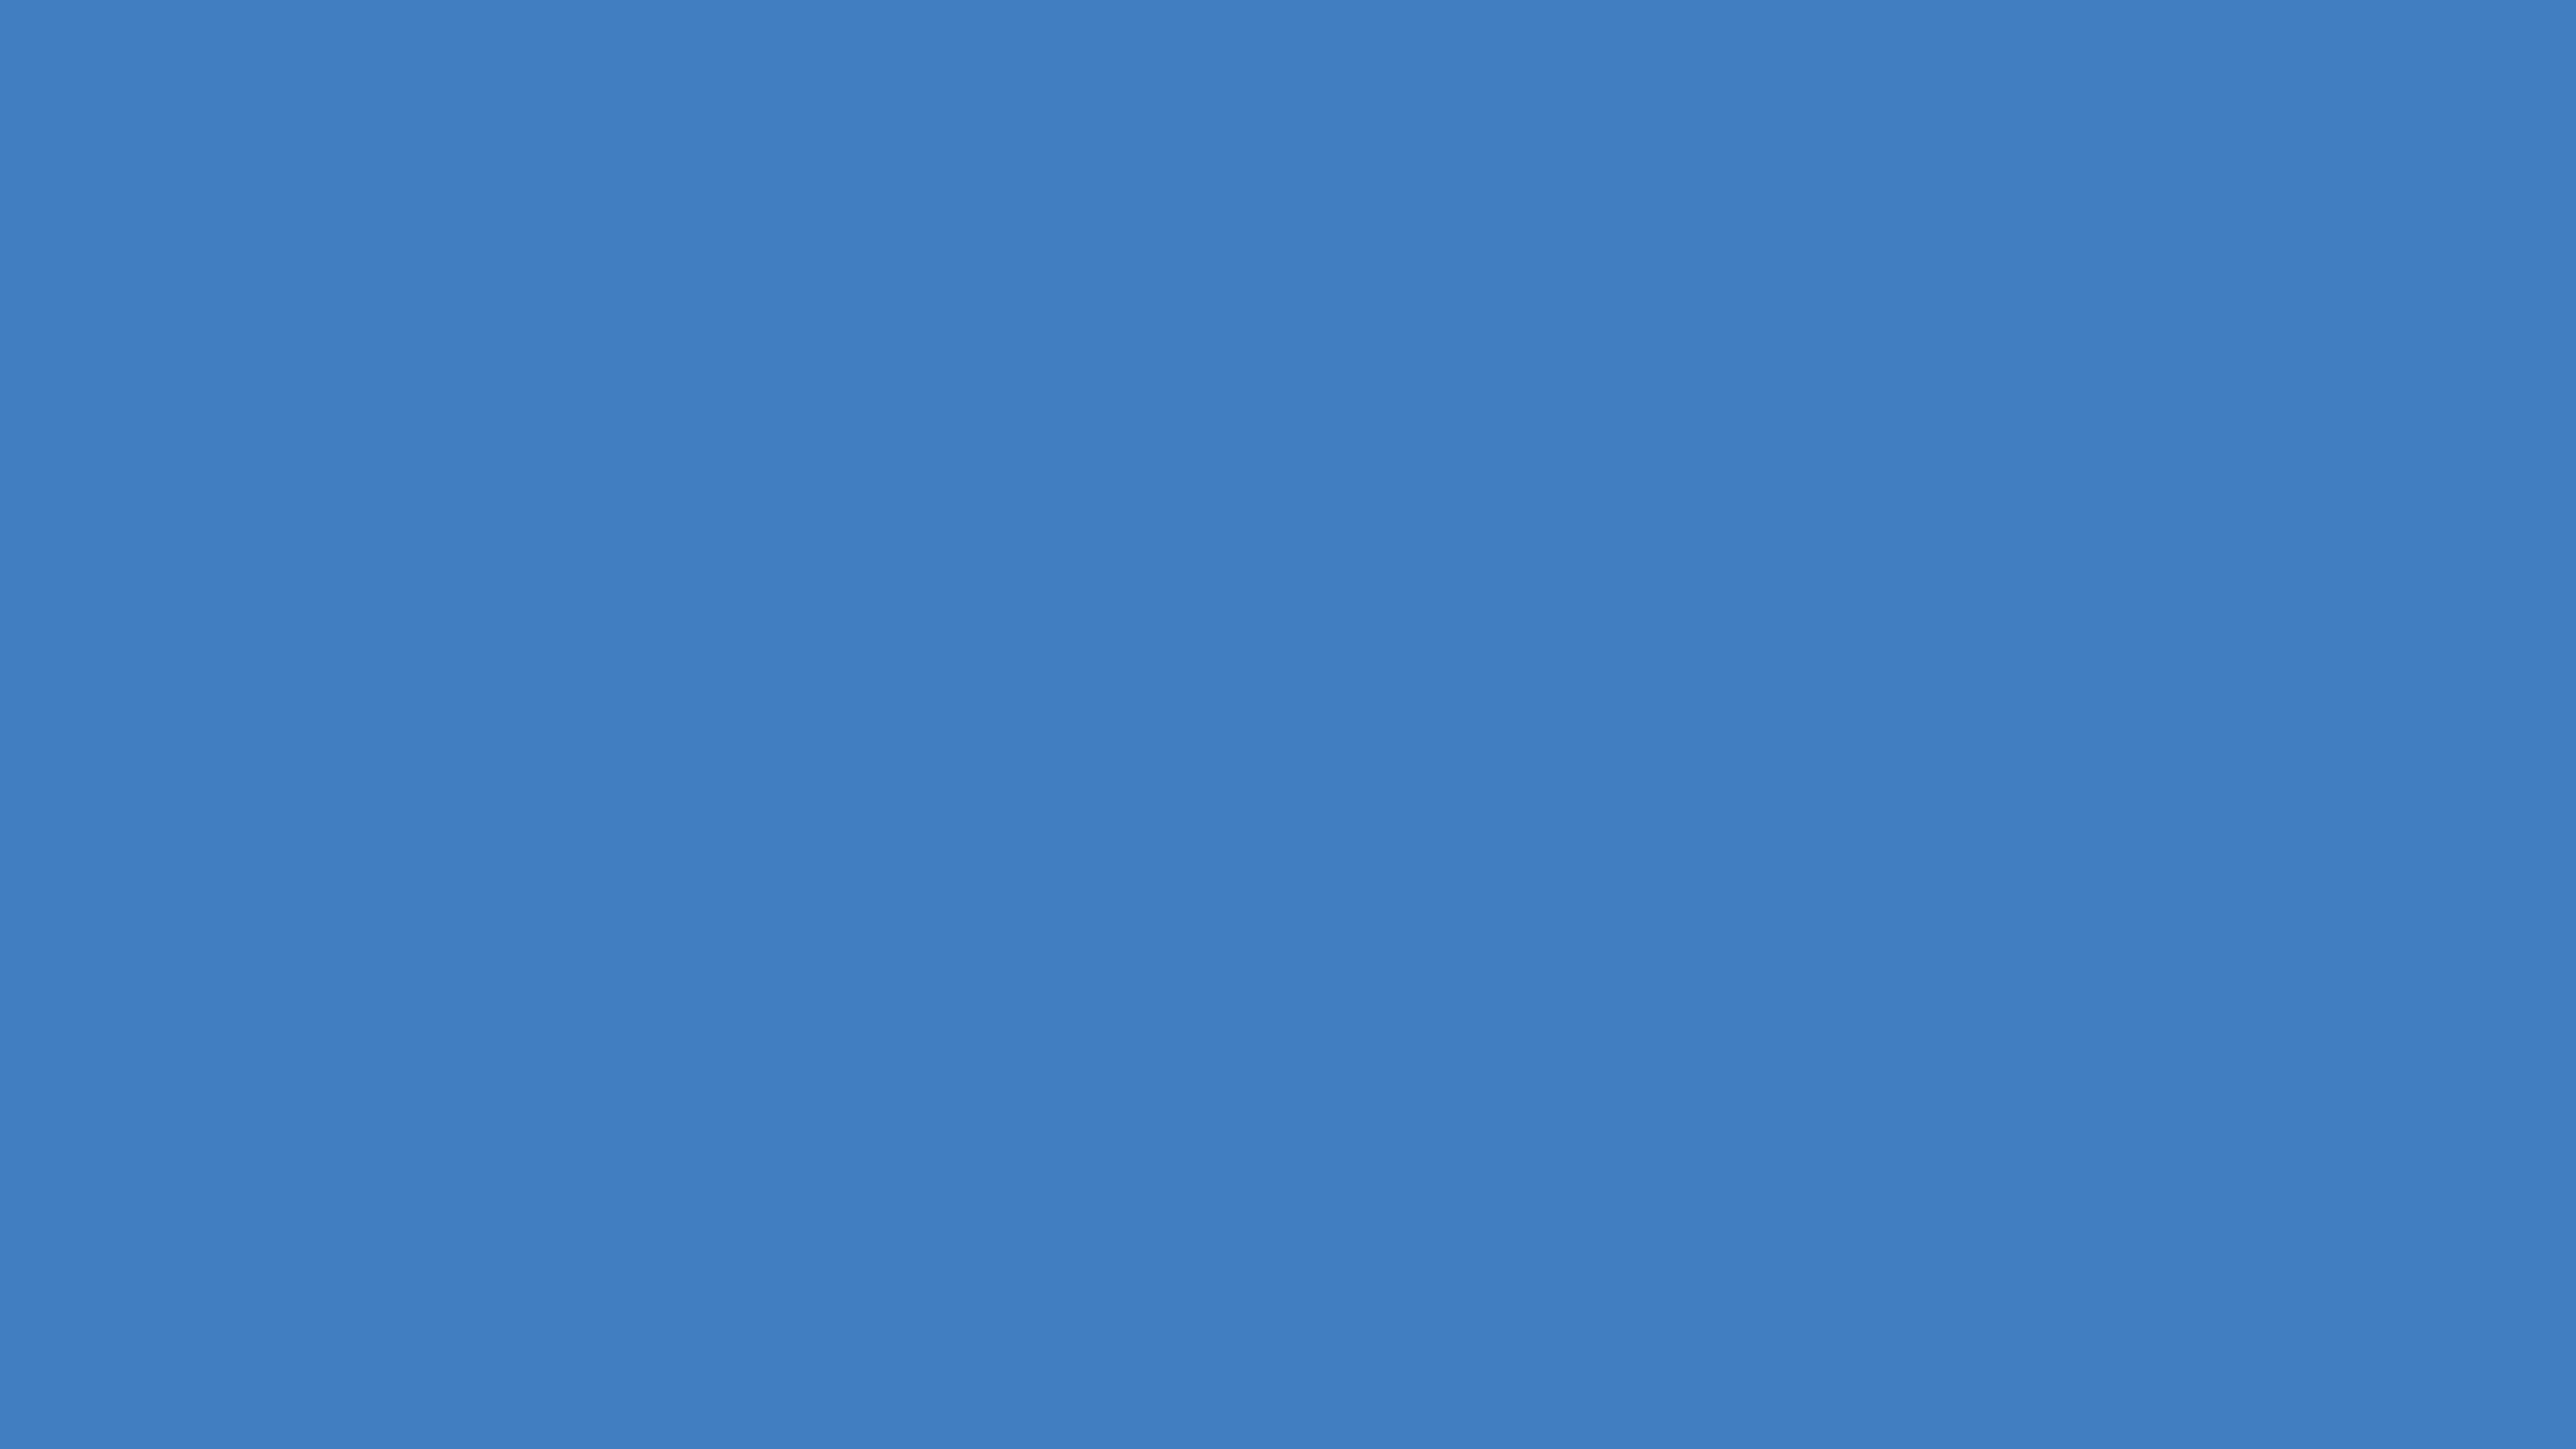 4096x2304 Tufts Blue Solid Color Background